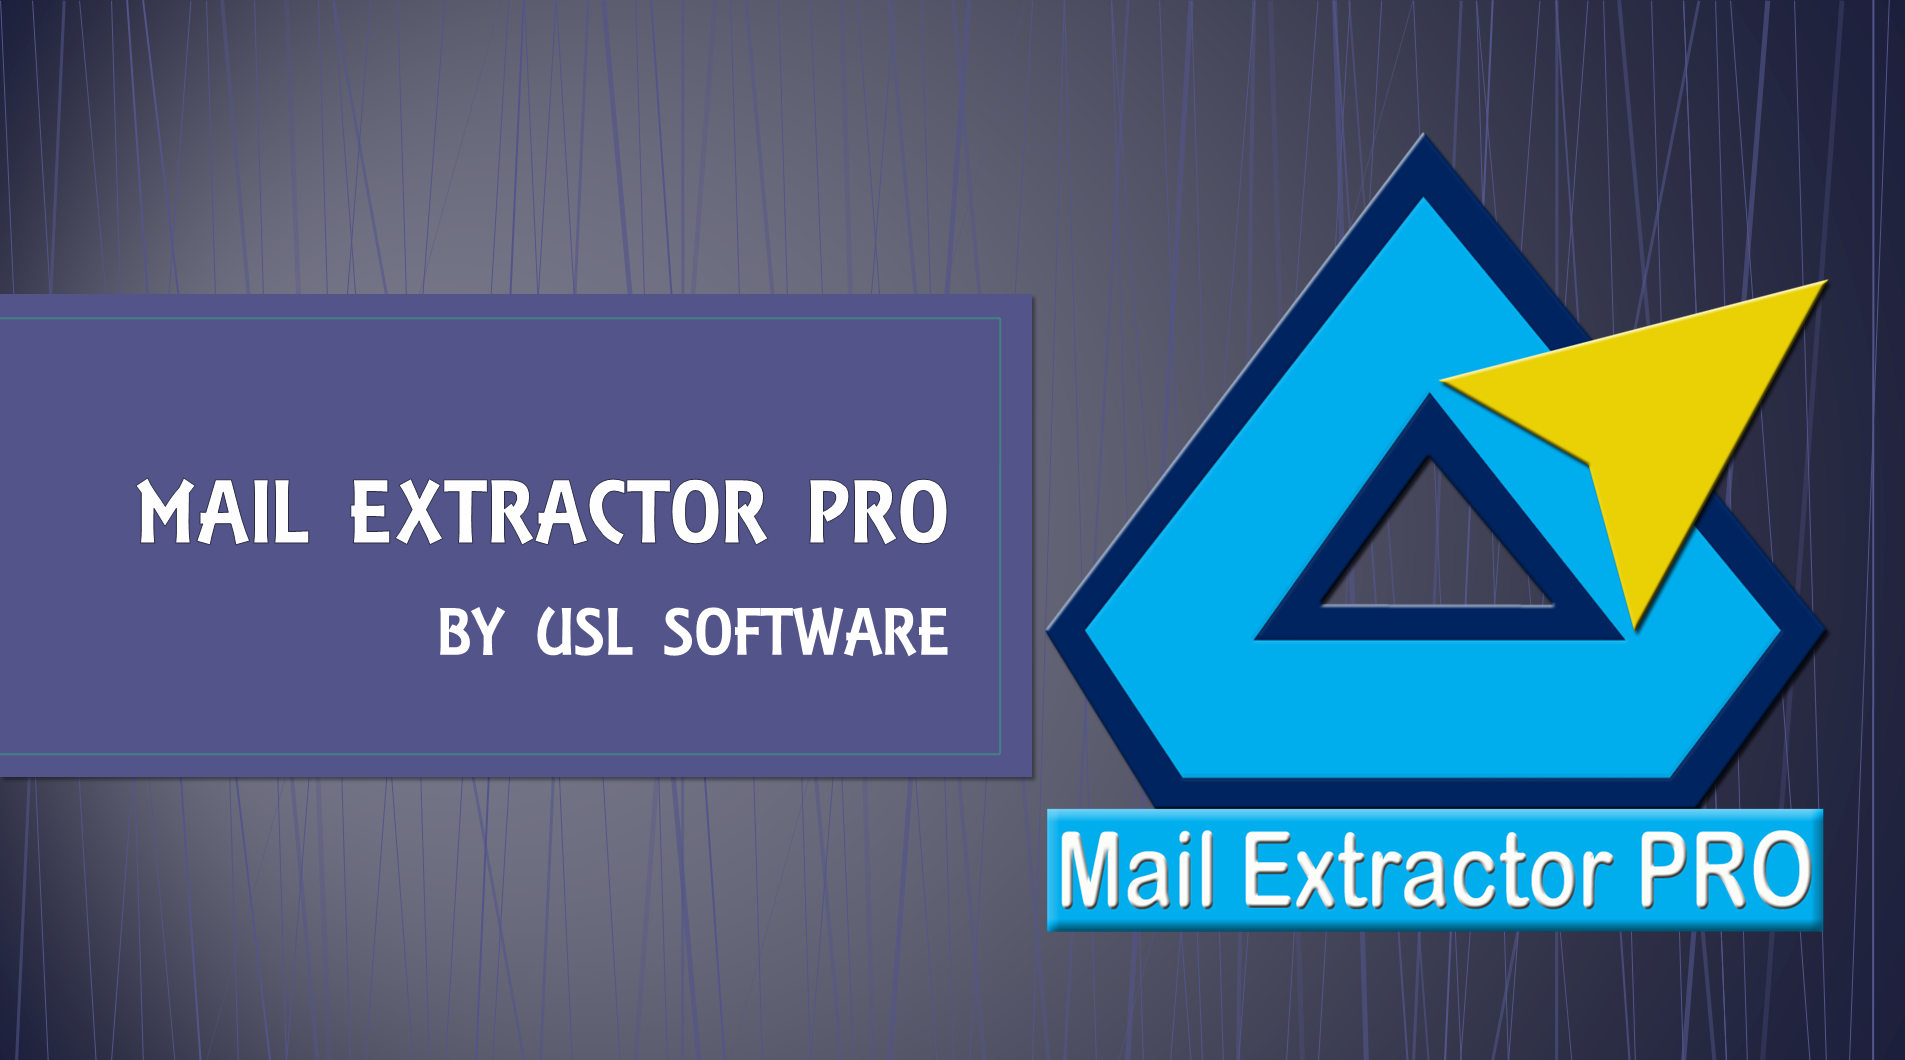 OS X Mail to Pst Converter (Convert Mail to Outlook)